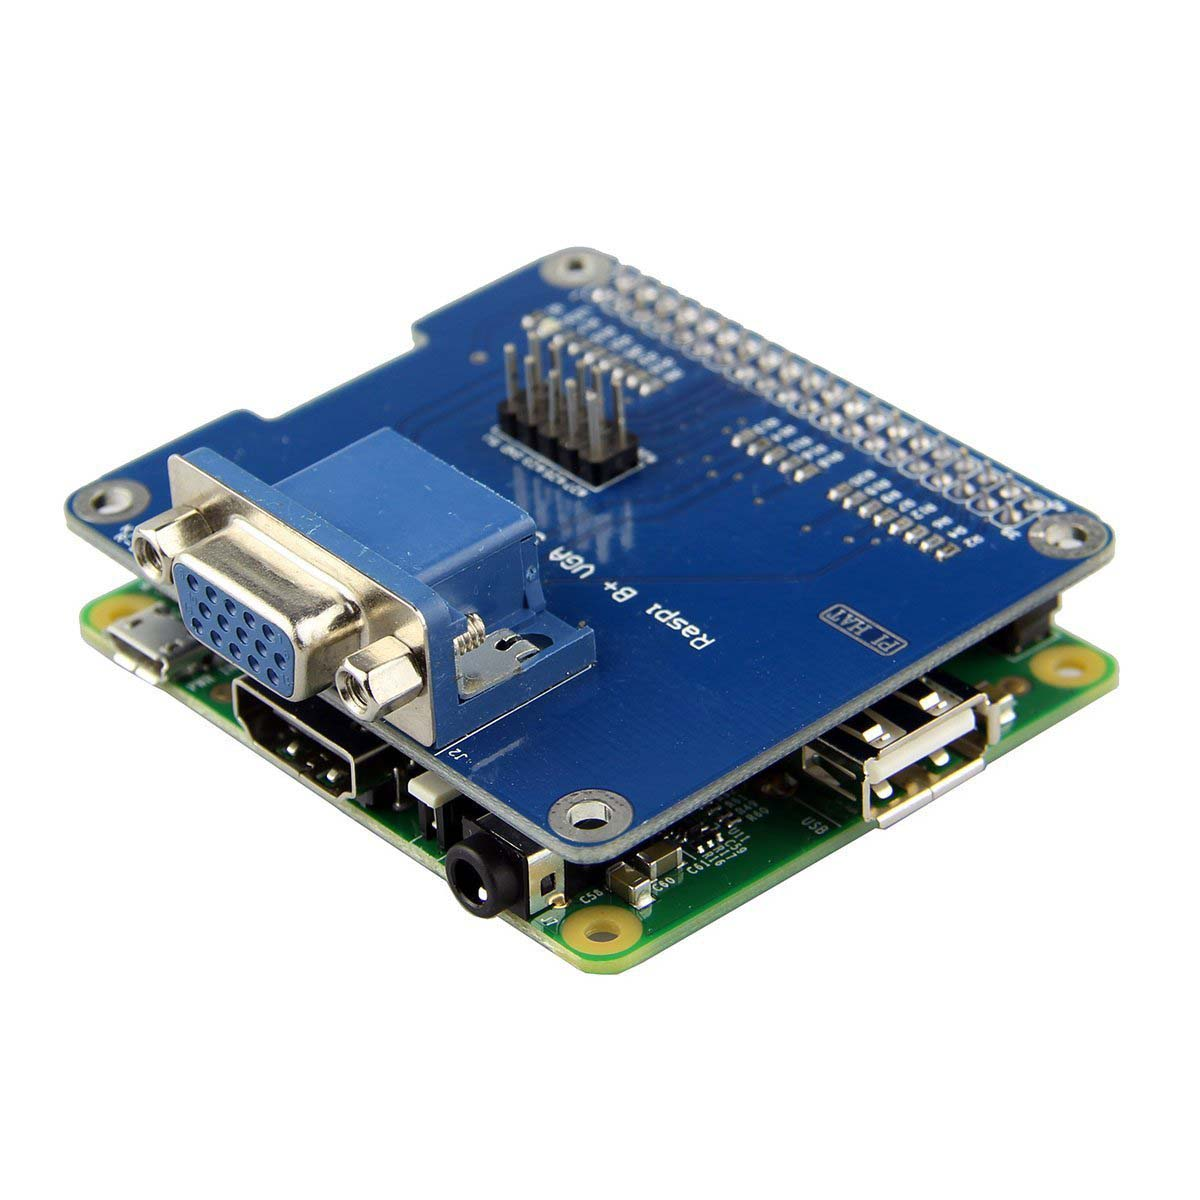 VGA Shield V2.0 Expansion Board For Raspberry Pi 3B/2B /B+/A+ Extend a VGA interface via GPIO and remain HDMI